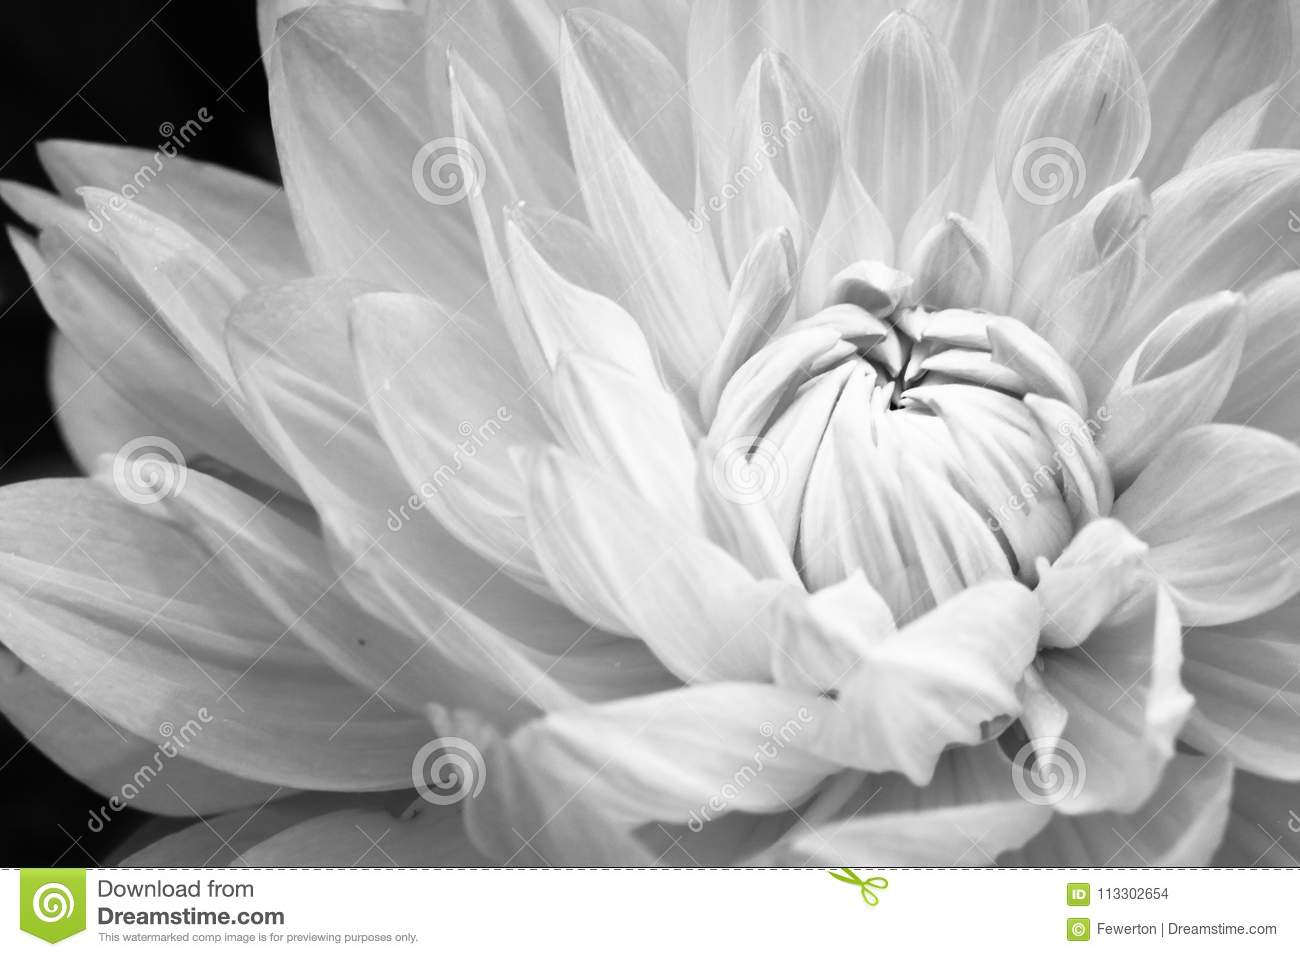 Details Of Blooming White Dahlia Fresh Flower Macro Photography